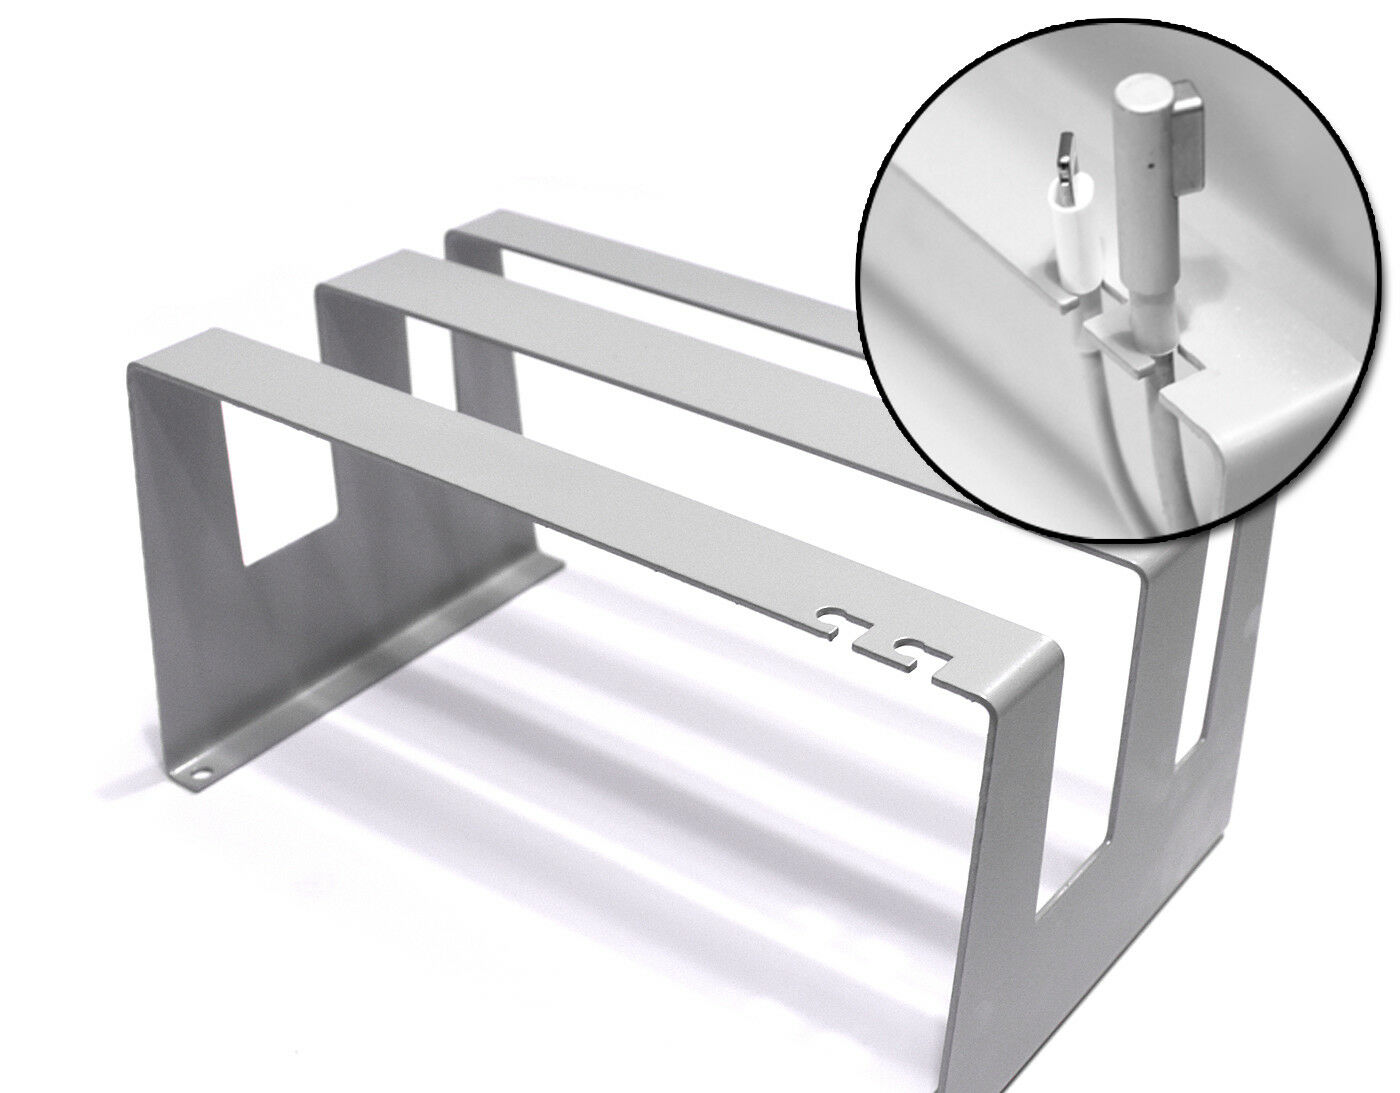 Laptop Tablet Vertical Desktop Stand Macbook iPad 2in1 Charger Grip Dell Surface